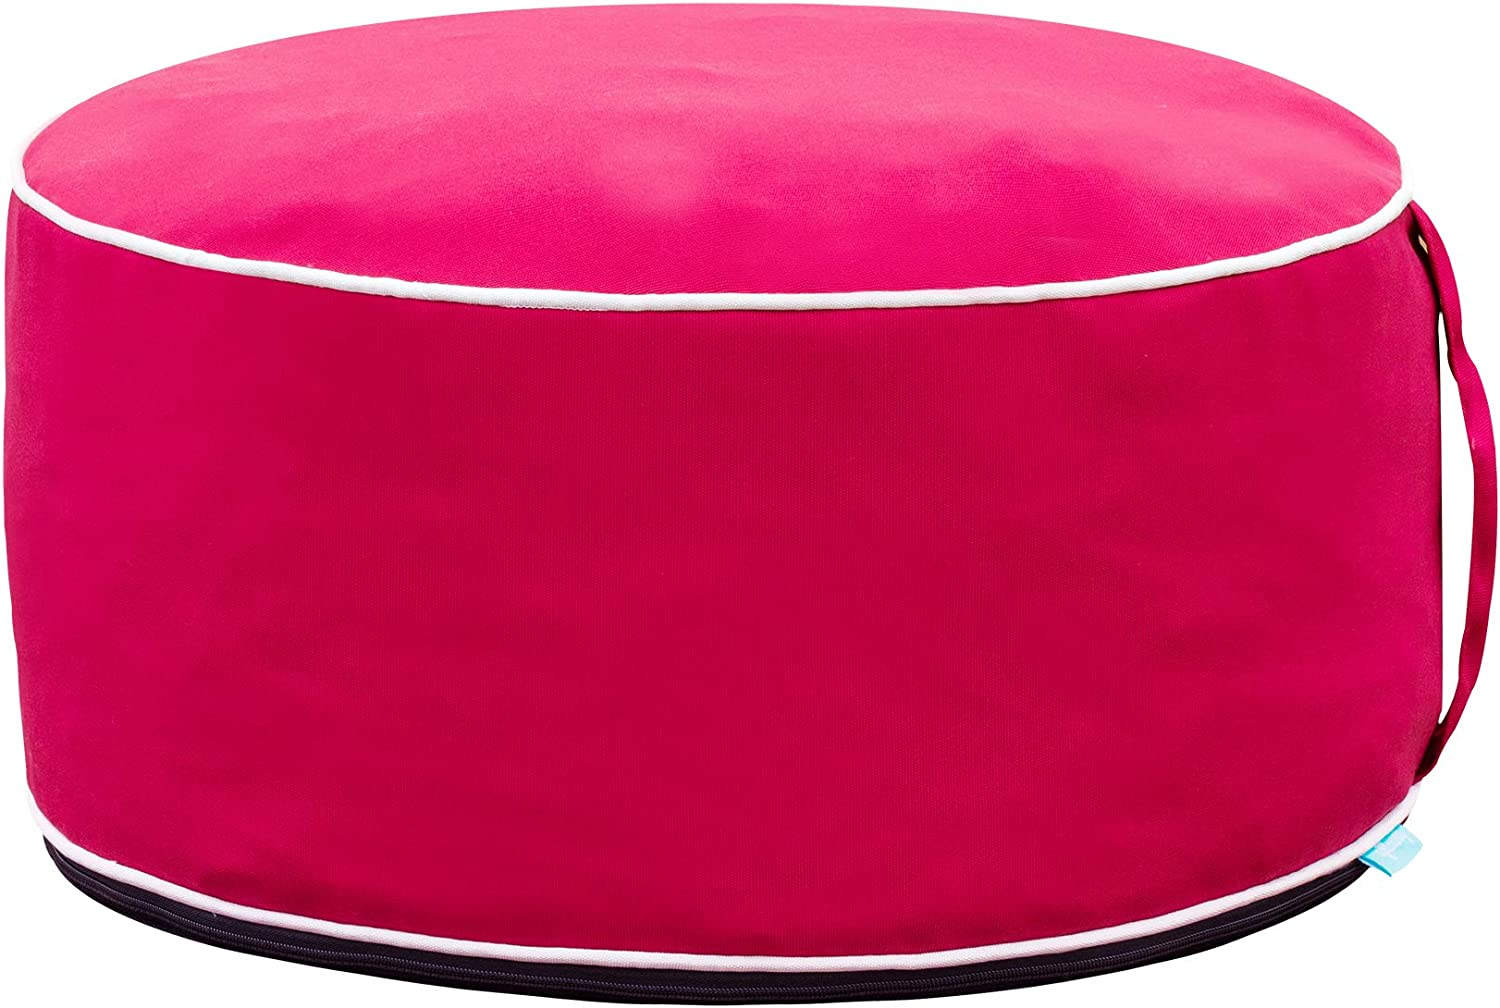 QILLOWAY Indoor/Outdoor Inflatable Stool,Round Ottoman, All Weather Foot Rest for Kids or Adults, Camping or Home (RED)…